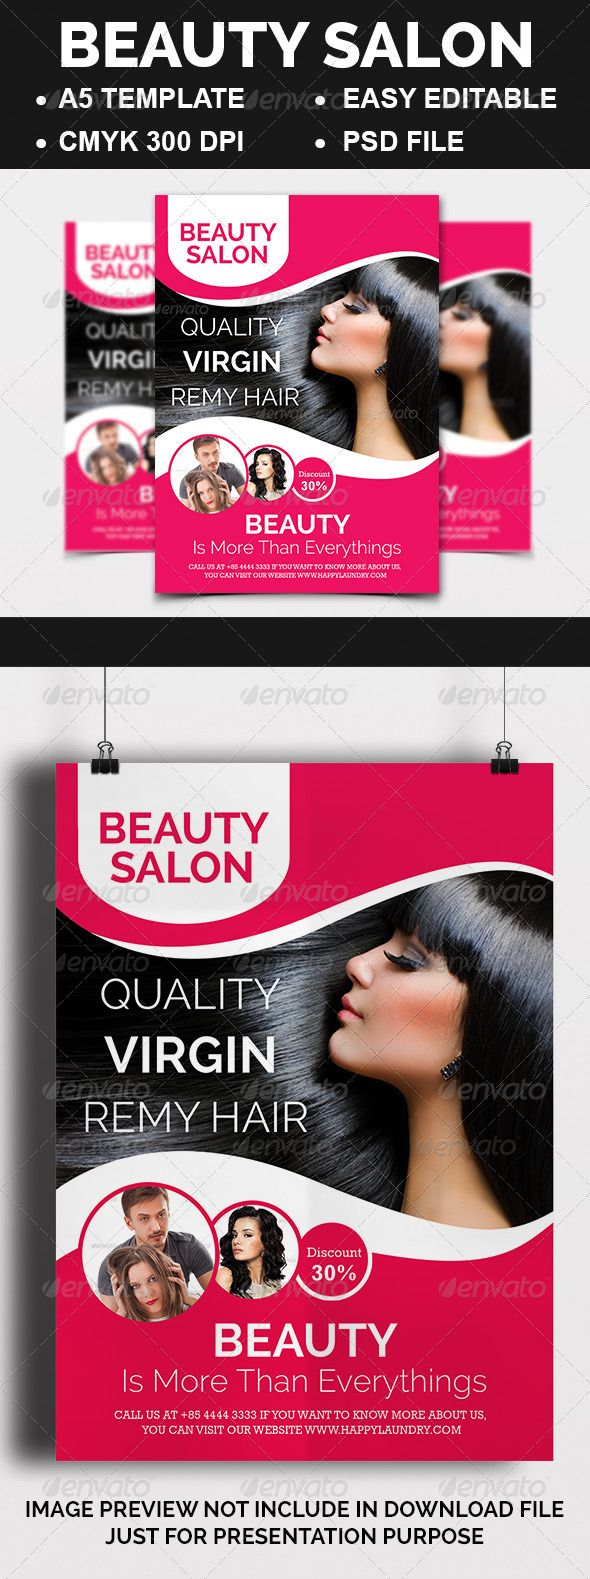 Beauty Salon Promotion Flyer